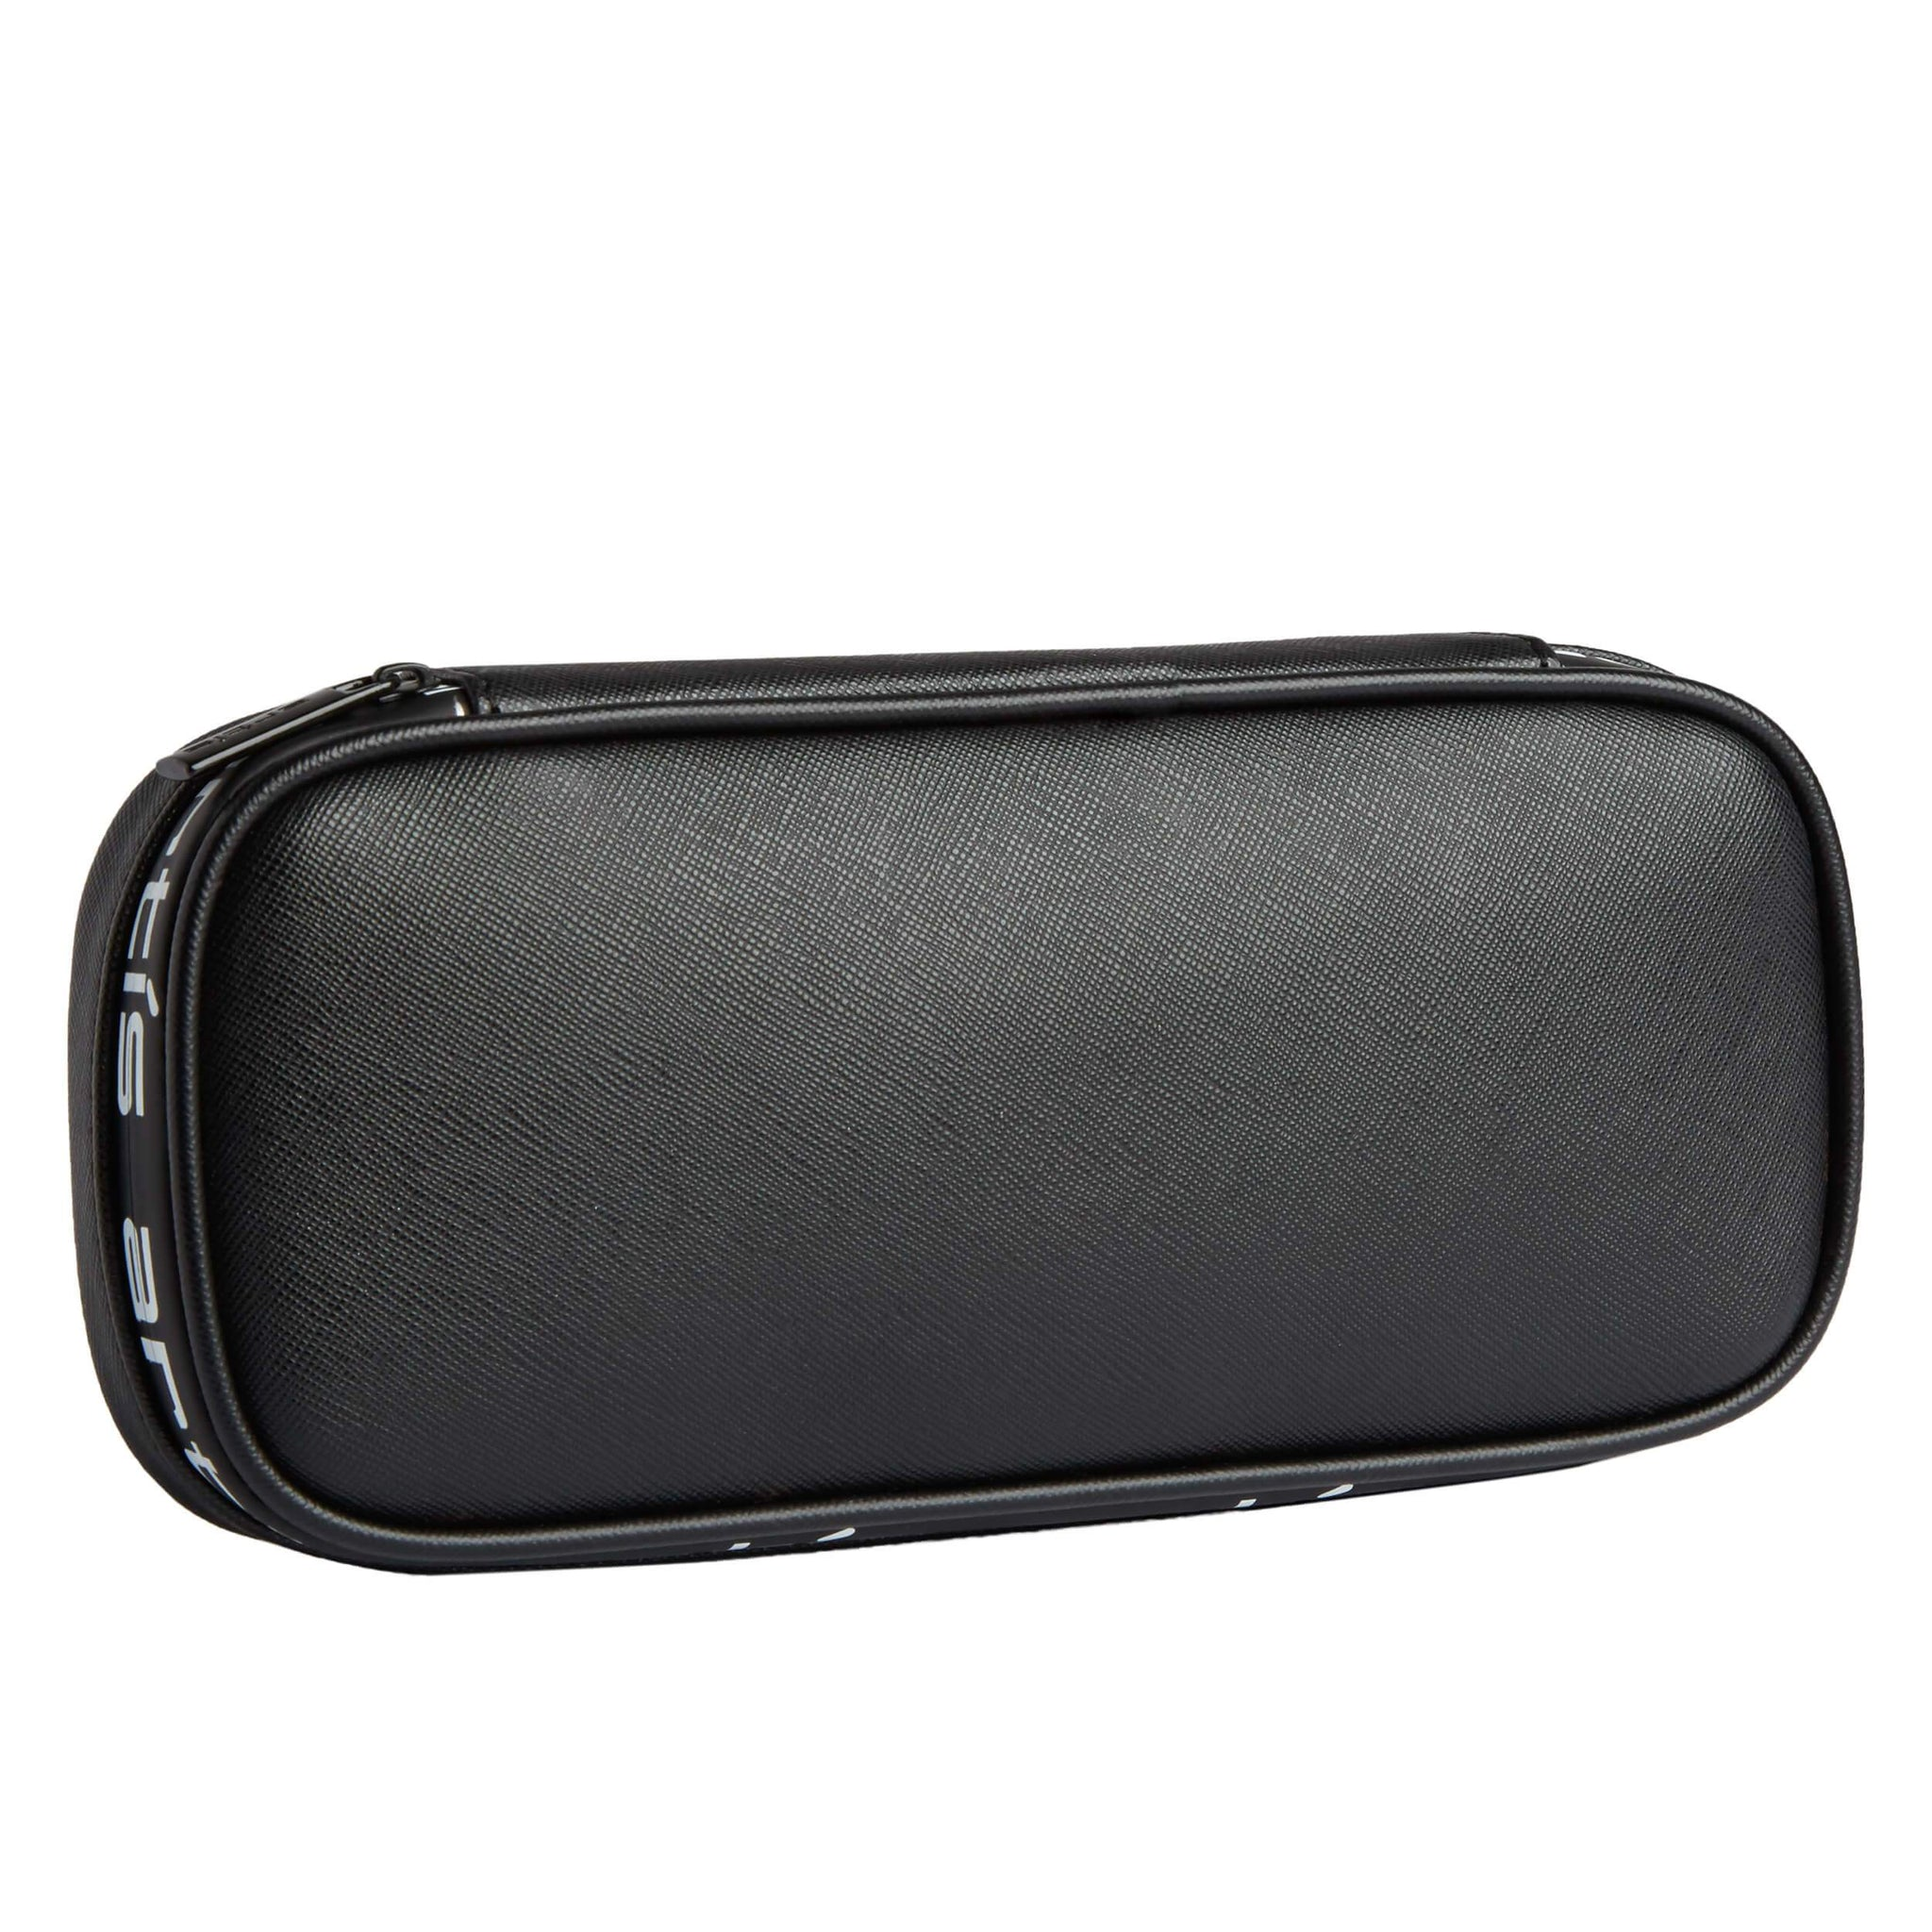 Runaround Travel Case, Mini